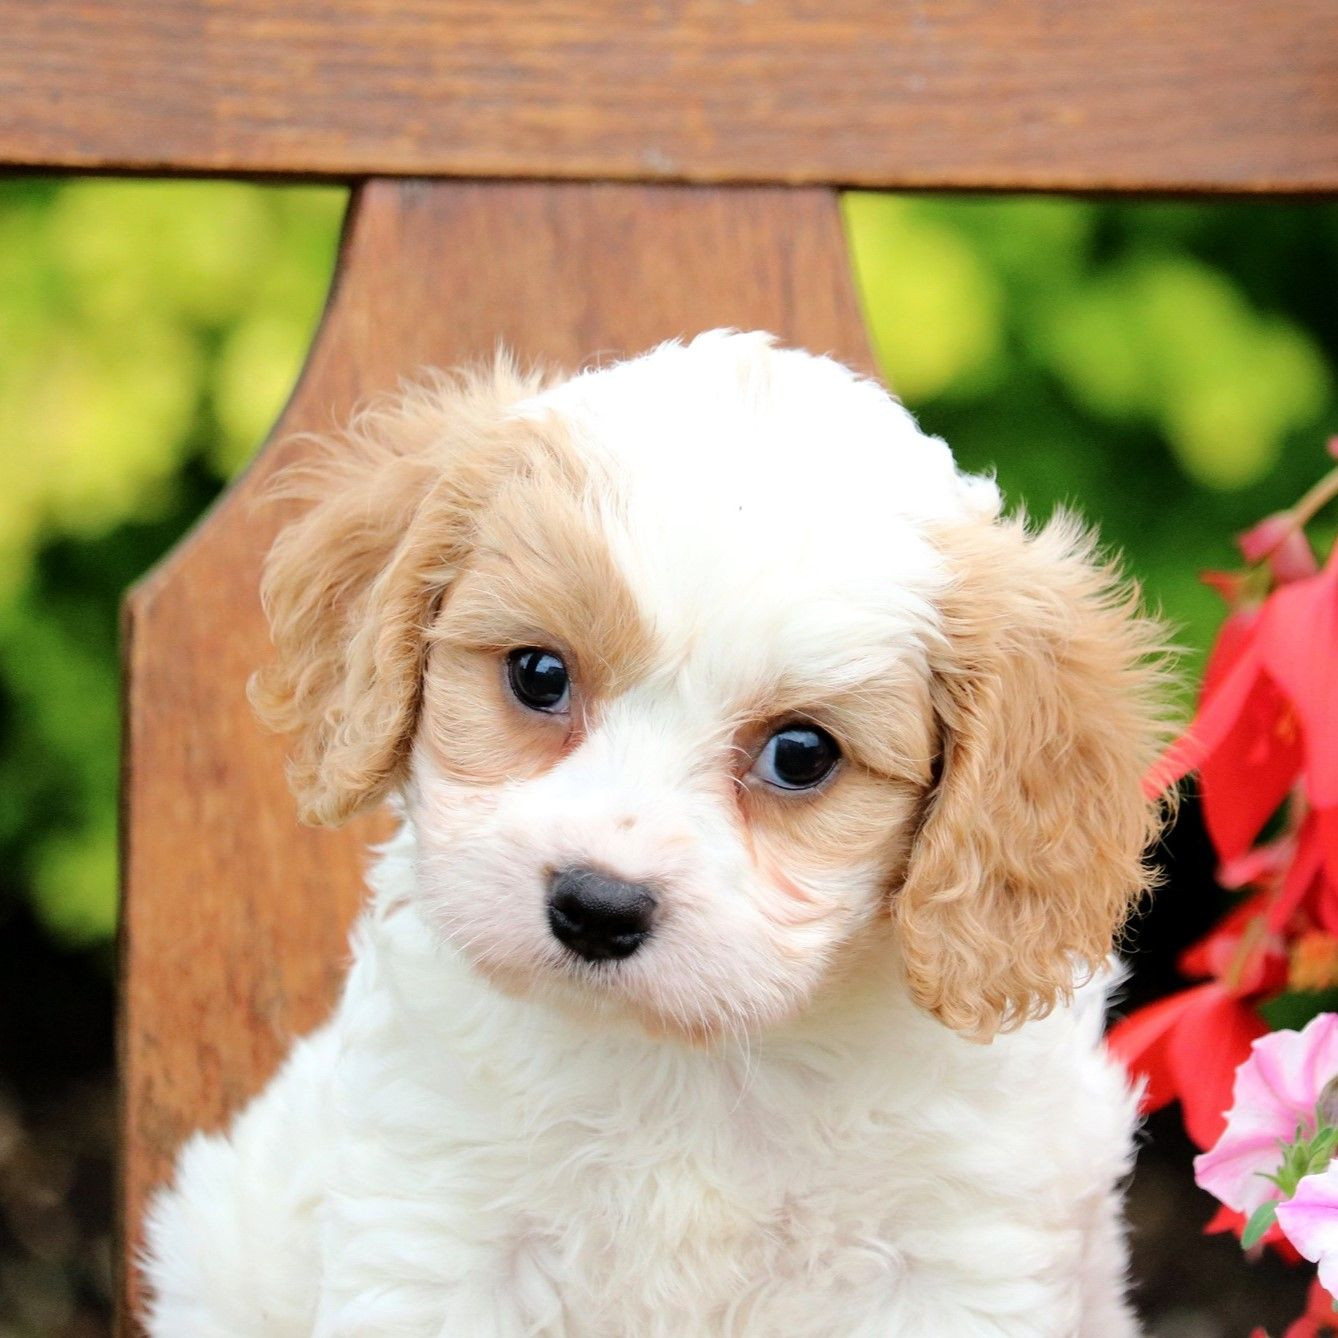 Precious Kindhearted Cuddly Cute Cavachon Puppies Will Make Great Companions They Would Love Curl Up Cavachon Puppies Cavachon Puppies For Sale